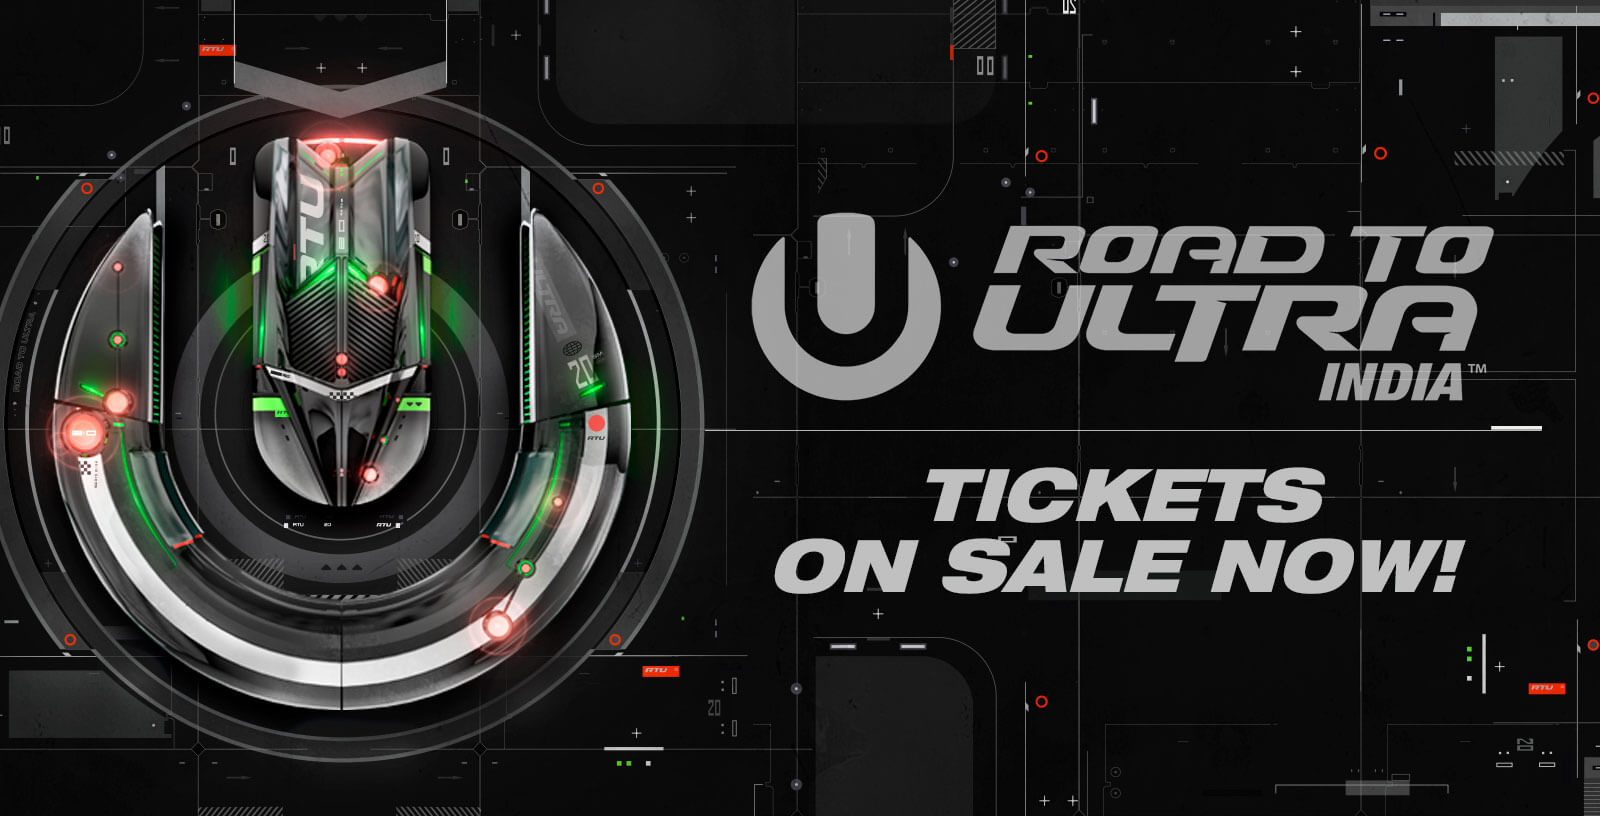 Road to ULTRA India Tickets On Sale Now